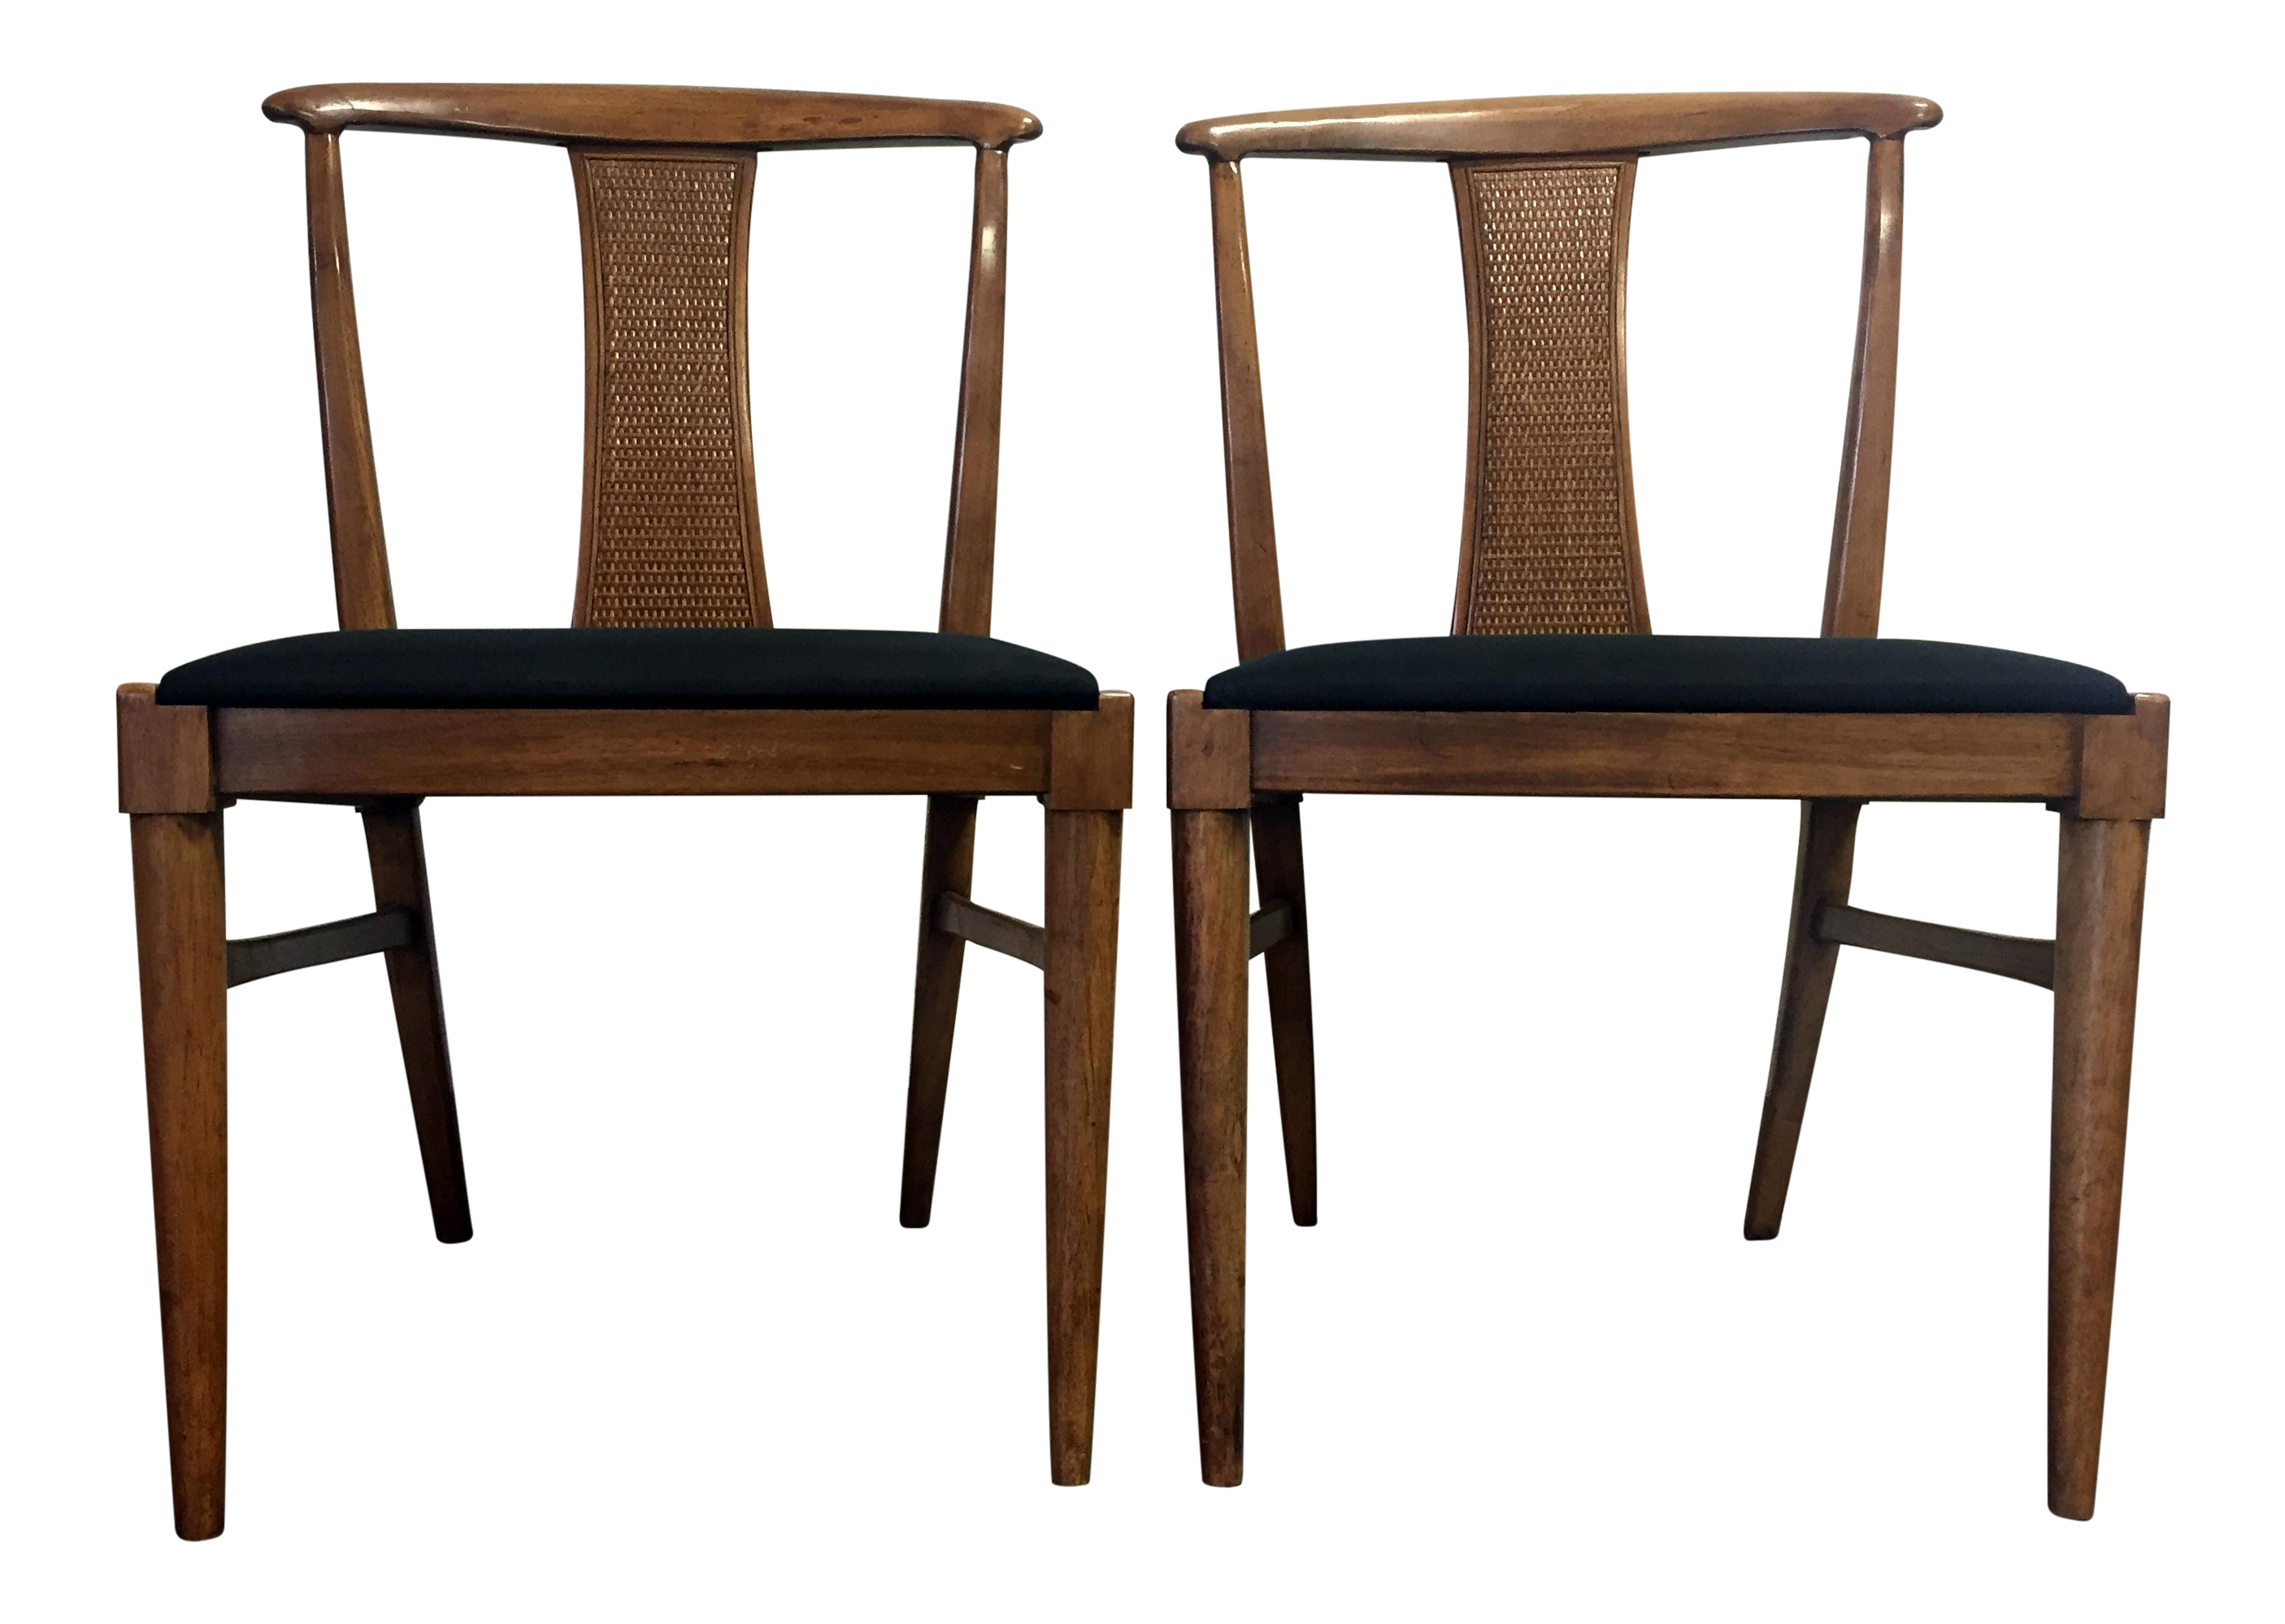 Mid Century Dining Chairs Instadiningus : ba75405d 55e1 4ace a223 60f5538a2797 from instadining.us size 2811 x 1998 png 2566kB